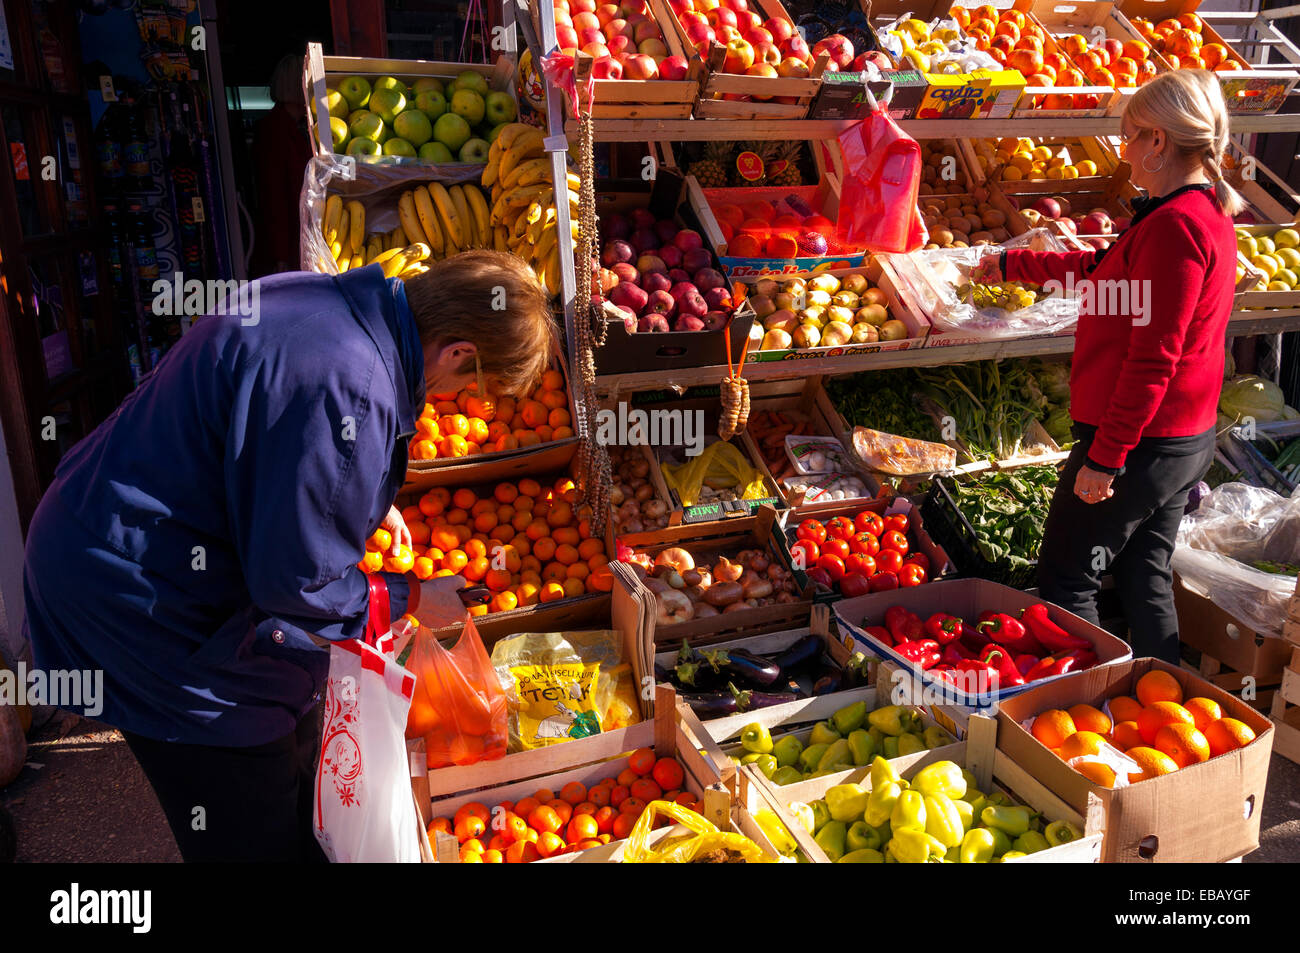 Women buying fruit and vegetables at a shop in Mostar, Bosnia and Herzegovina - Stock Image